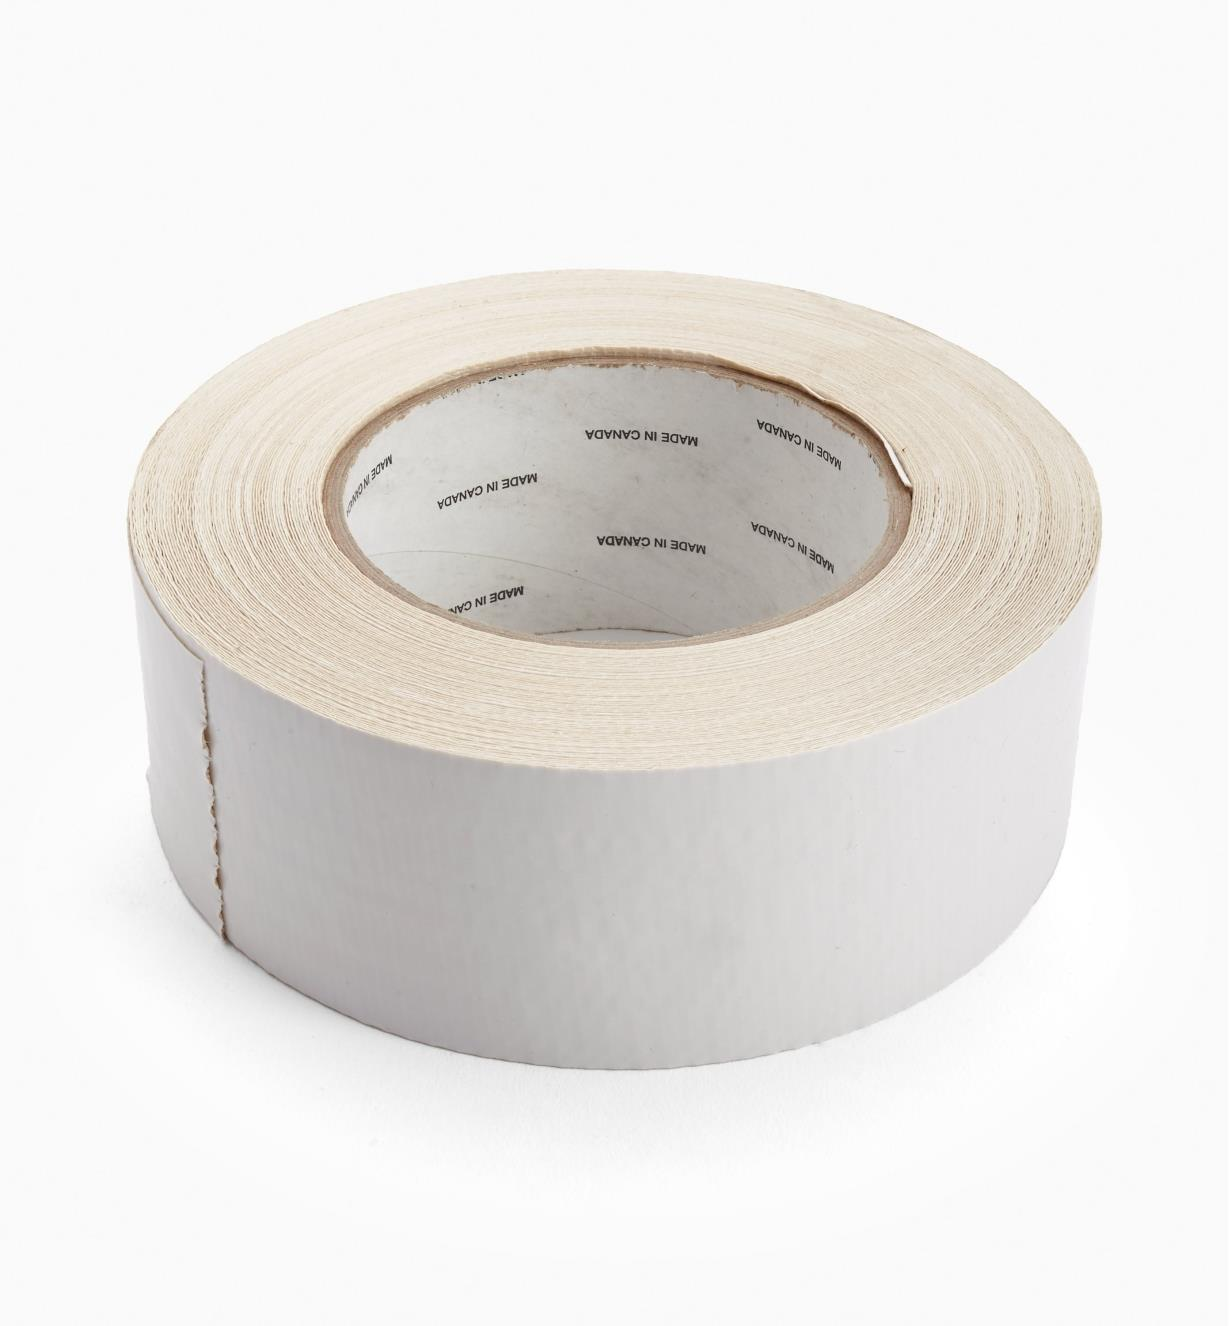 "25U0312 - 2"" x 75' (0.013"") Double-Sided Tape"